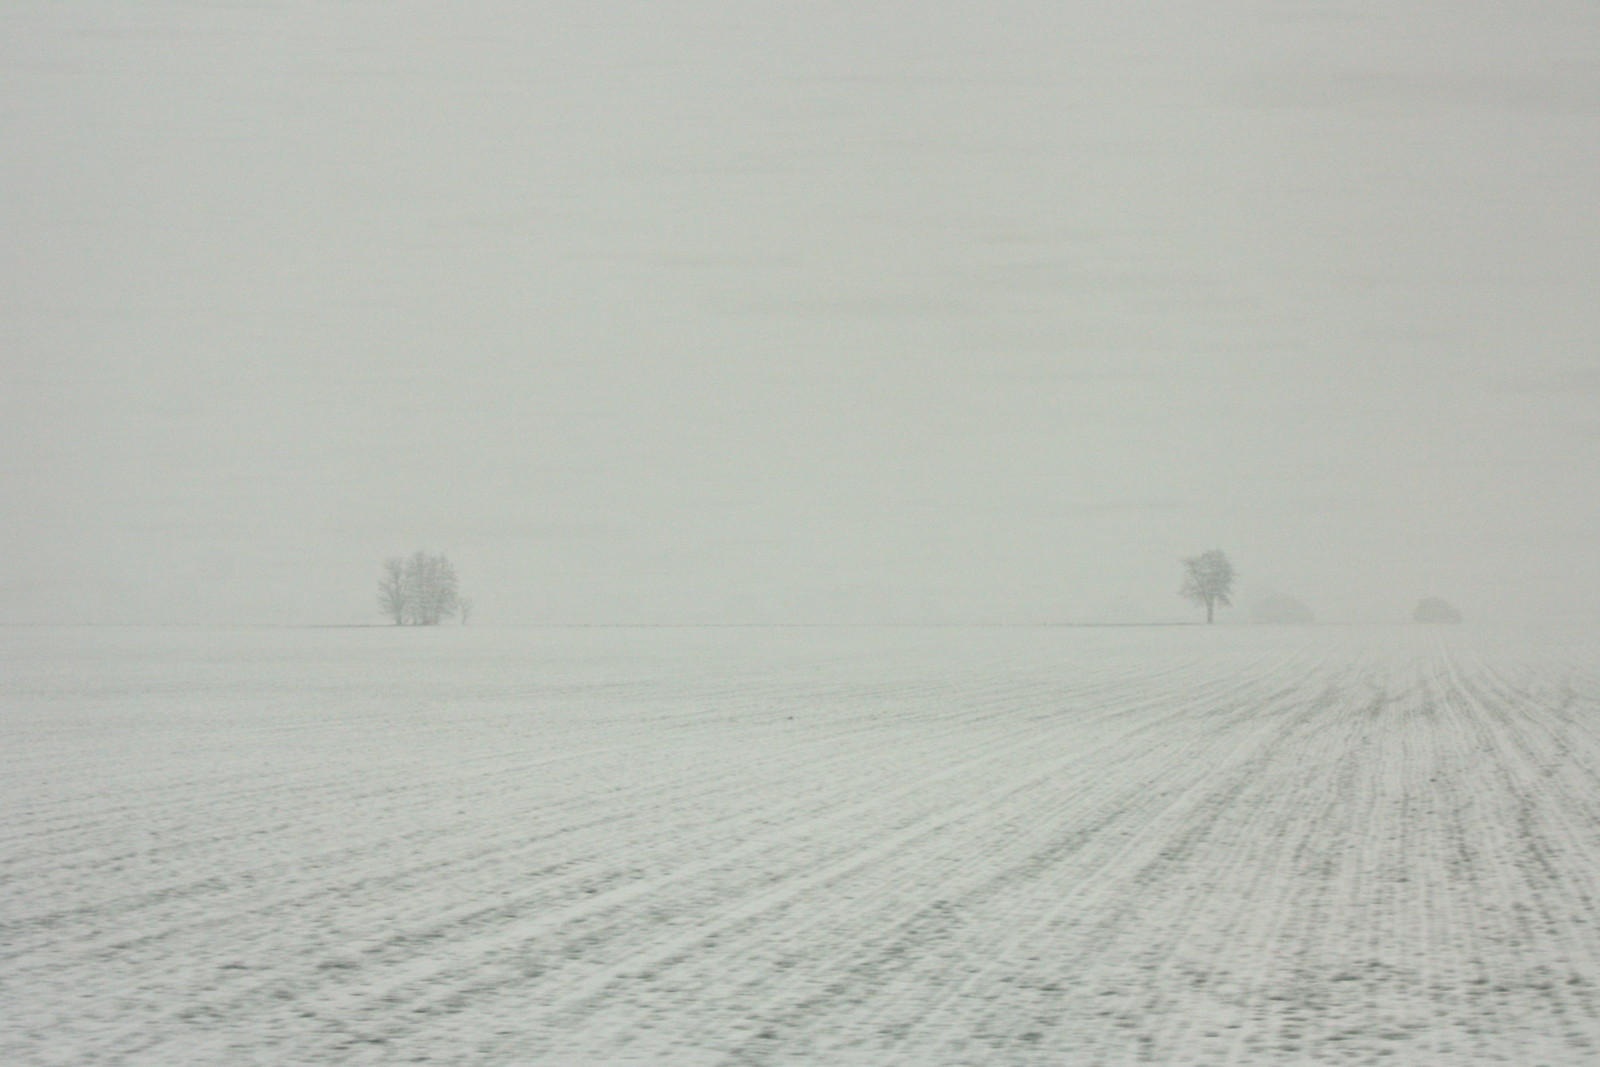 Snow in La Mancha, Spain